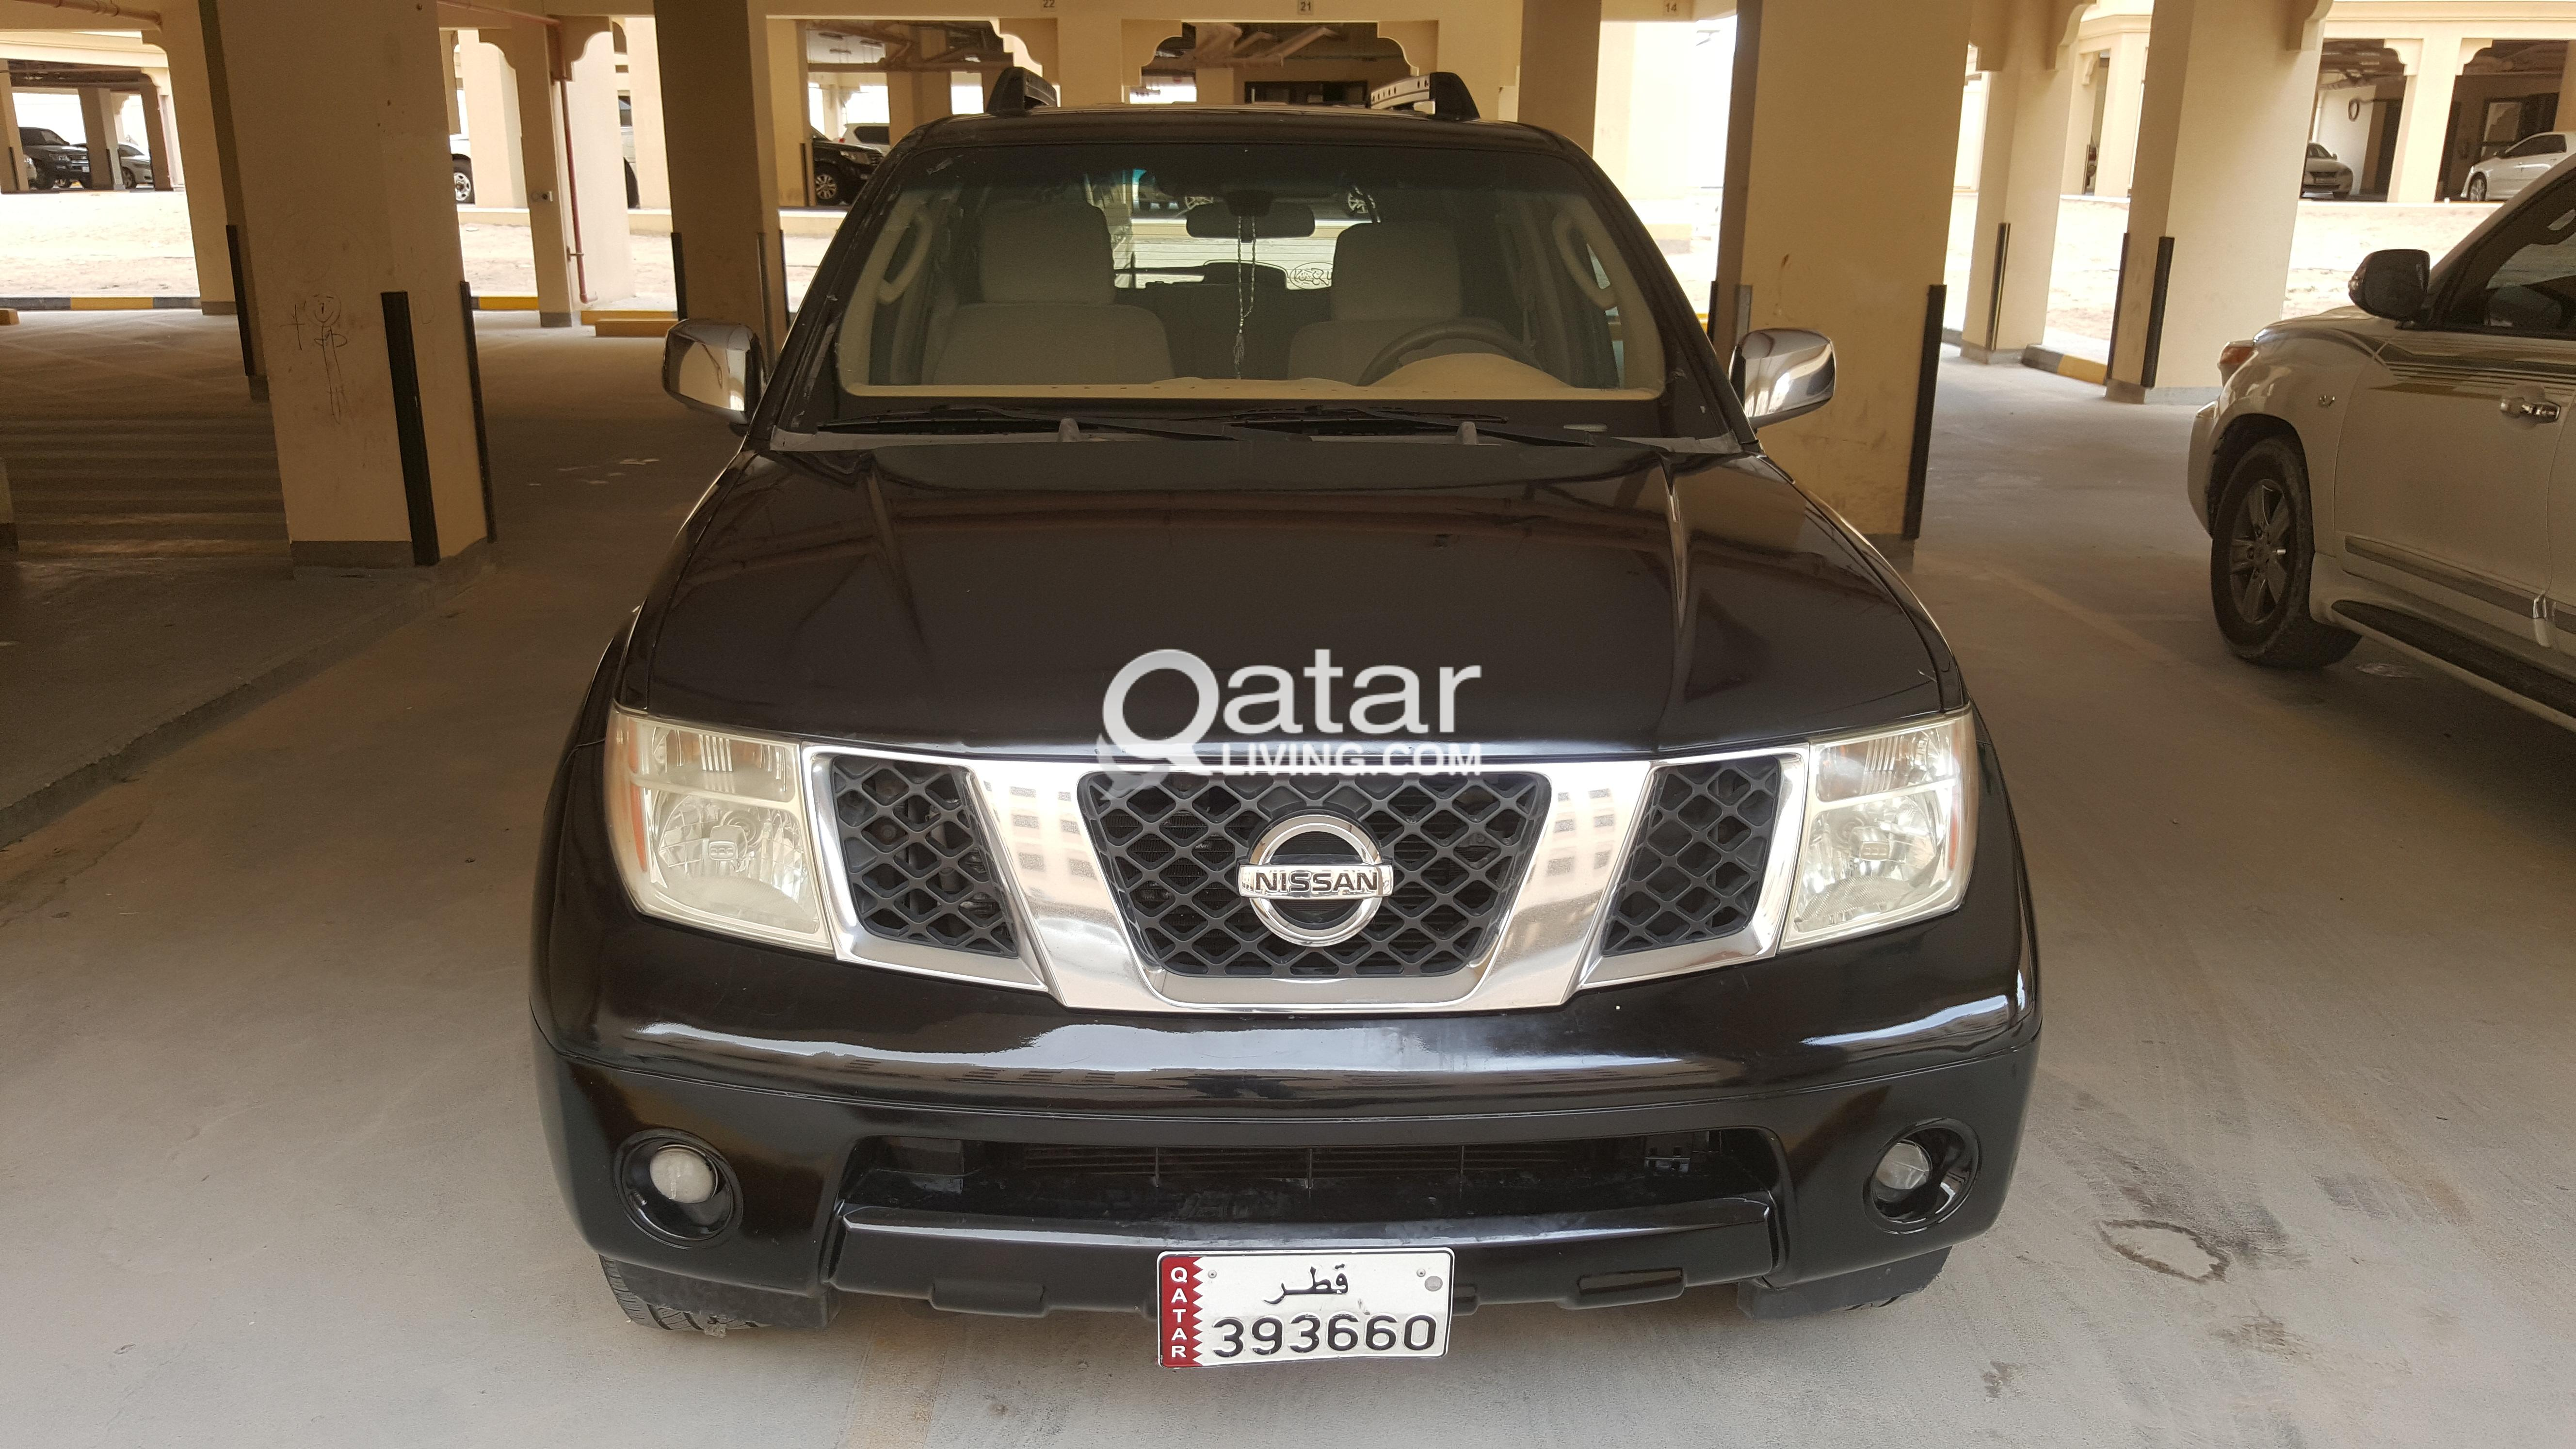 sale for nissan pinterest weber alexandr of specs tuning pin by pathfinder and on photo photos auto perfect